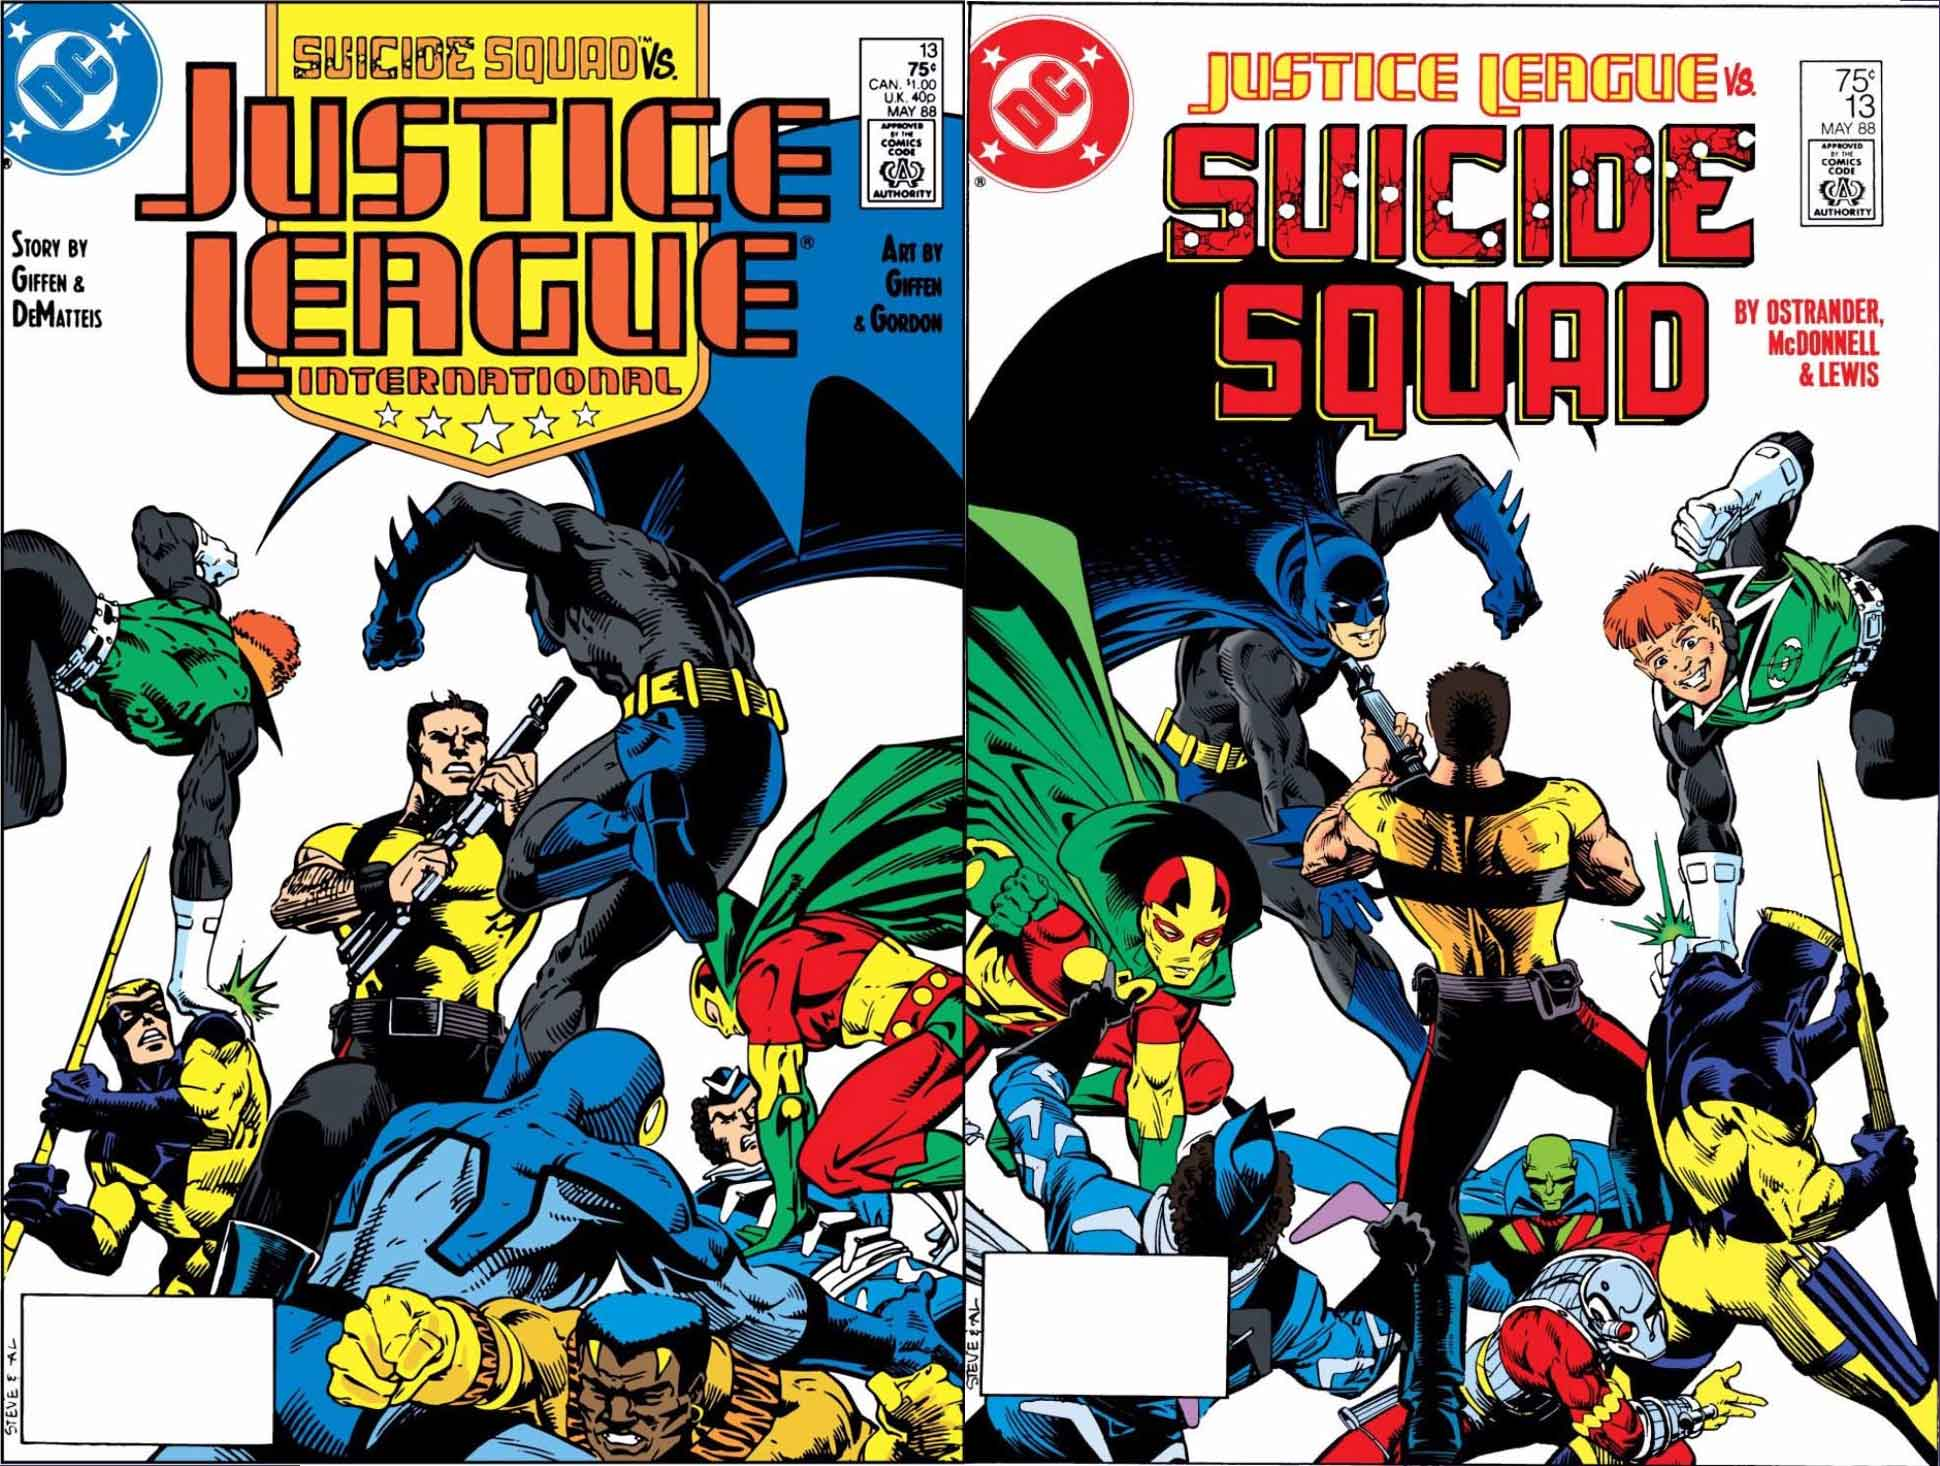 Justice League International #13 and Suicide Squad #13 covers by Steve Leialoha and Al Gordon